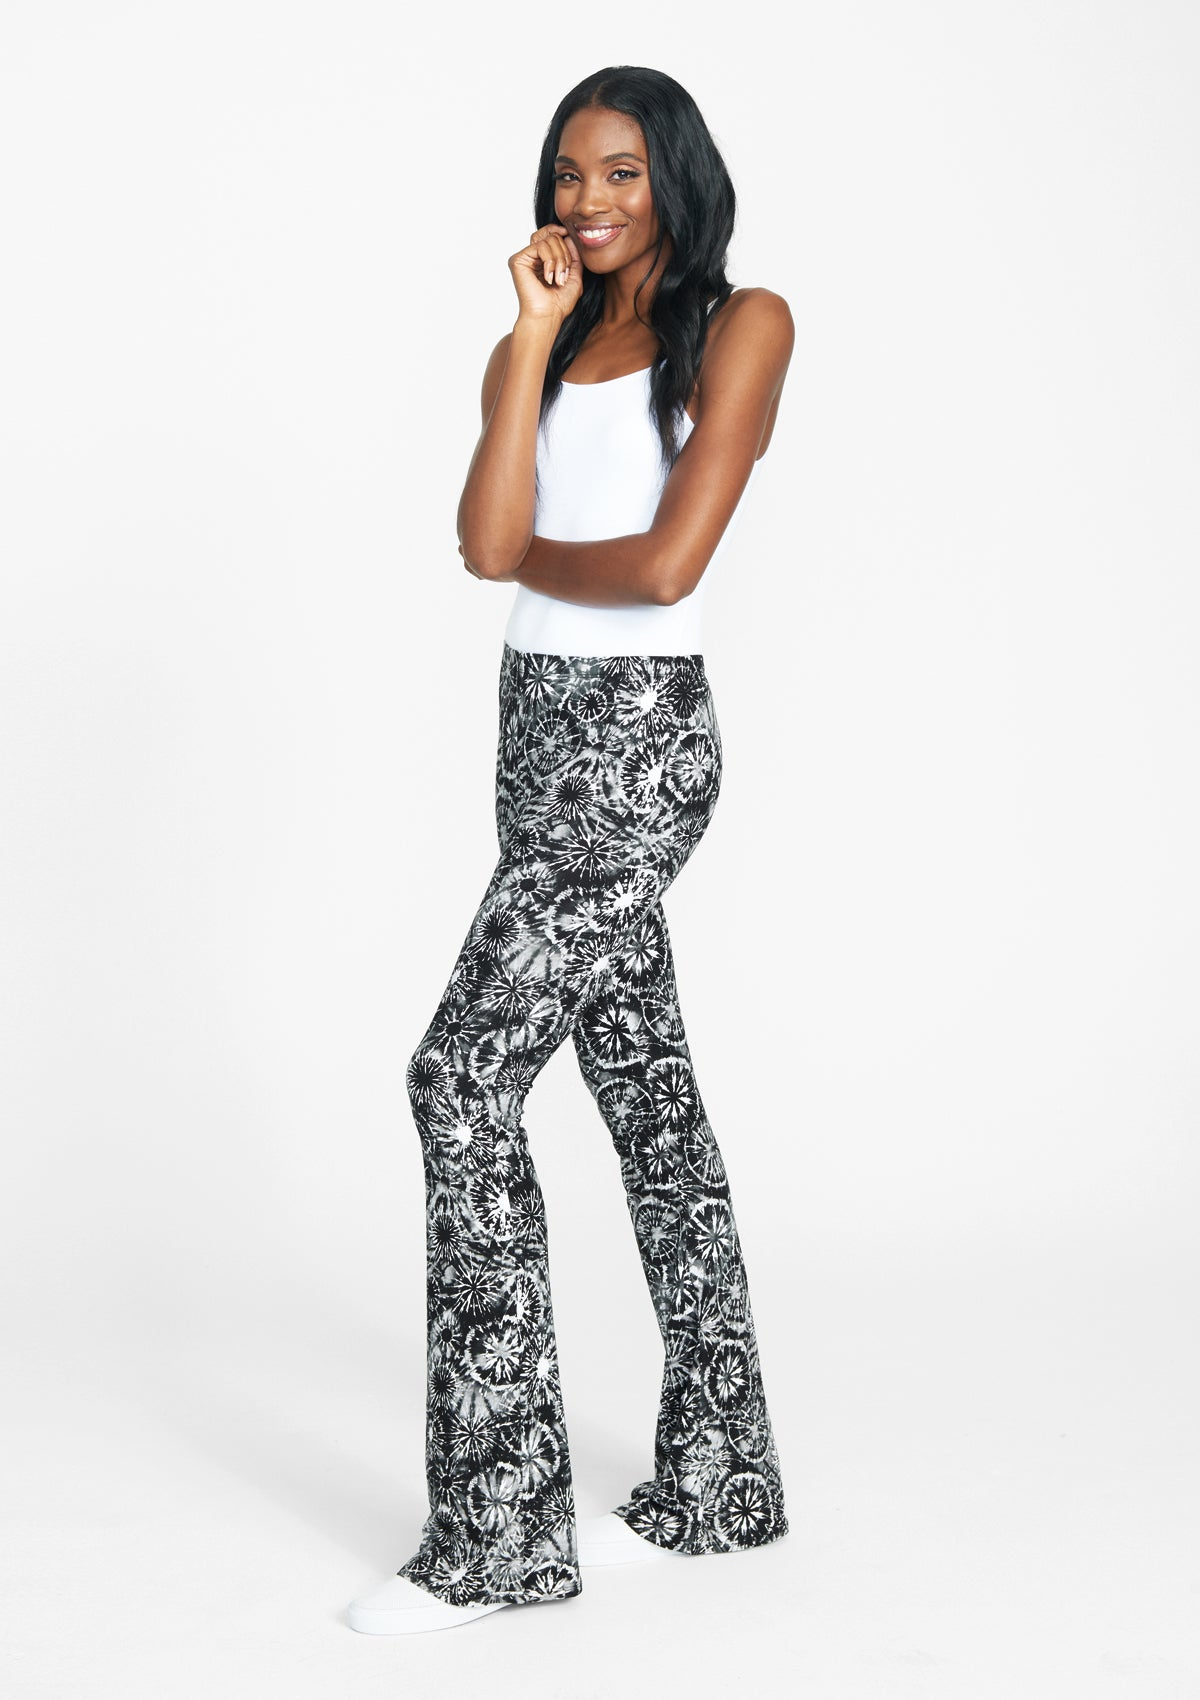 Alloy Apparel Tall Elana Printed Pants for Women in Black Tie Dye Size M   Polyester